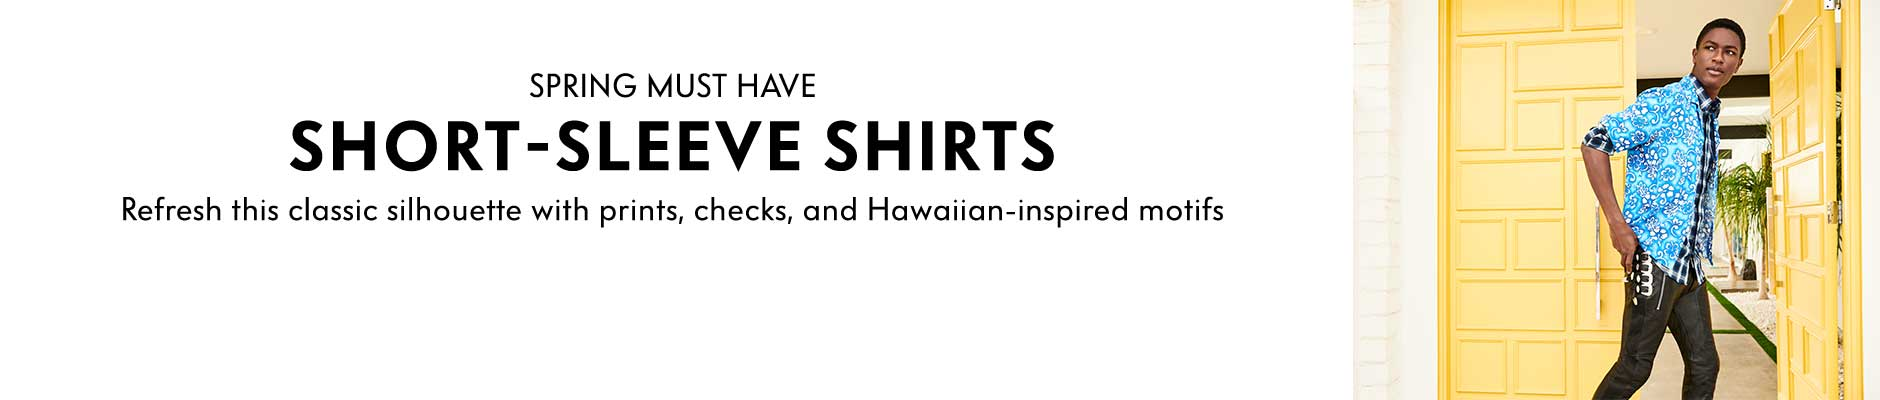 Spring Must Have: Short-Sleeve Shirts - Refresh this classic silhouette with prints, checks, and Hawaiian-inspired motifs